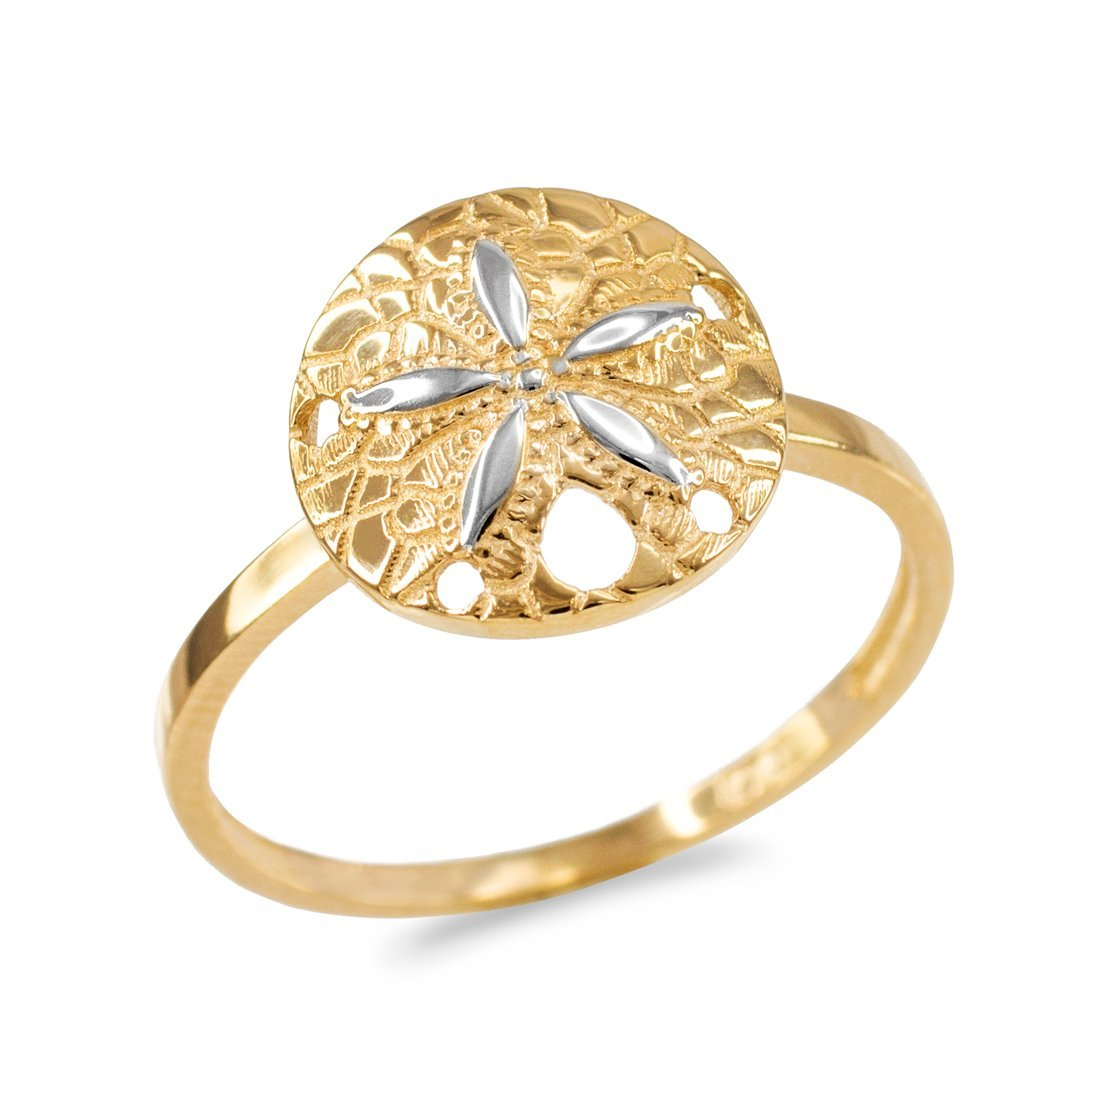 Dainty 10k Two-Tone Gold Sand Dollar Ladies Ring (Size 5.5)